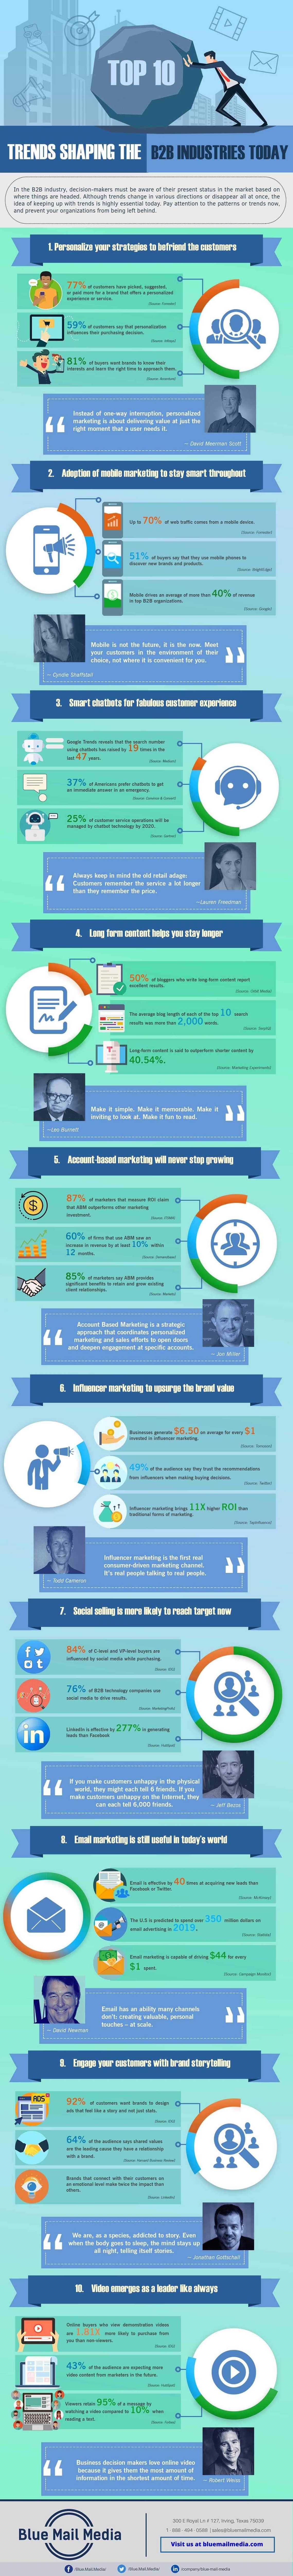 Top 10 Trends Shaping B2B Industries Today #infographic